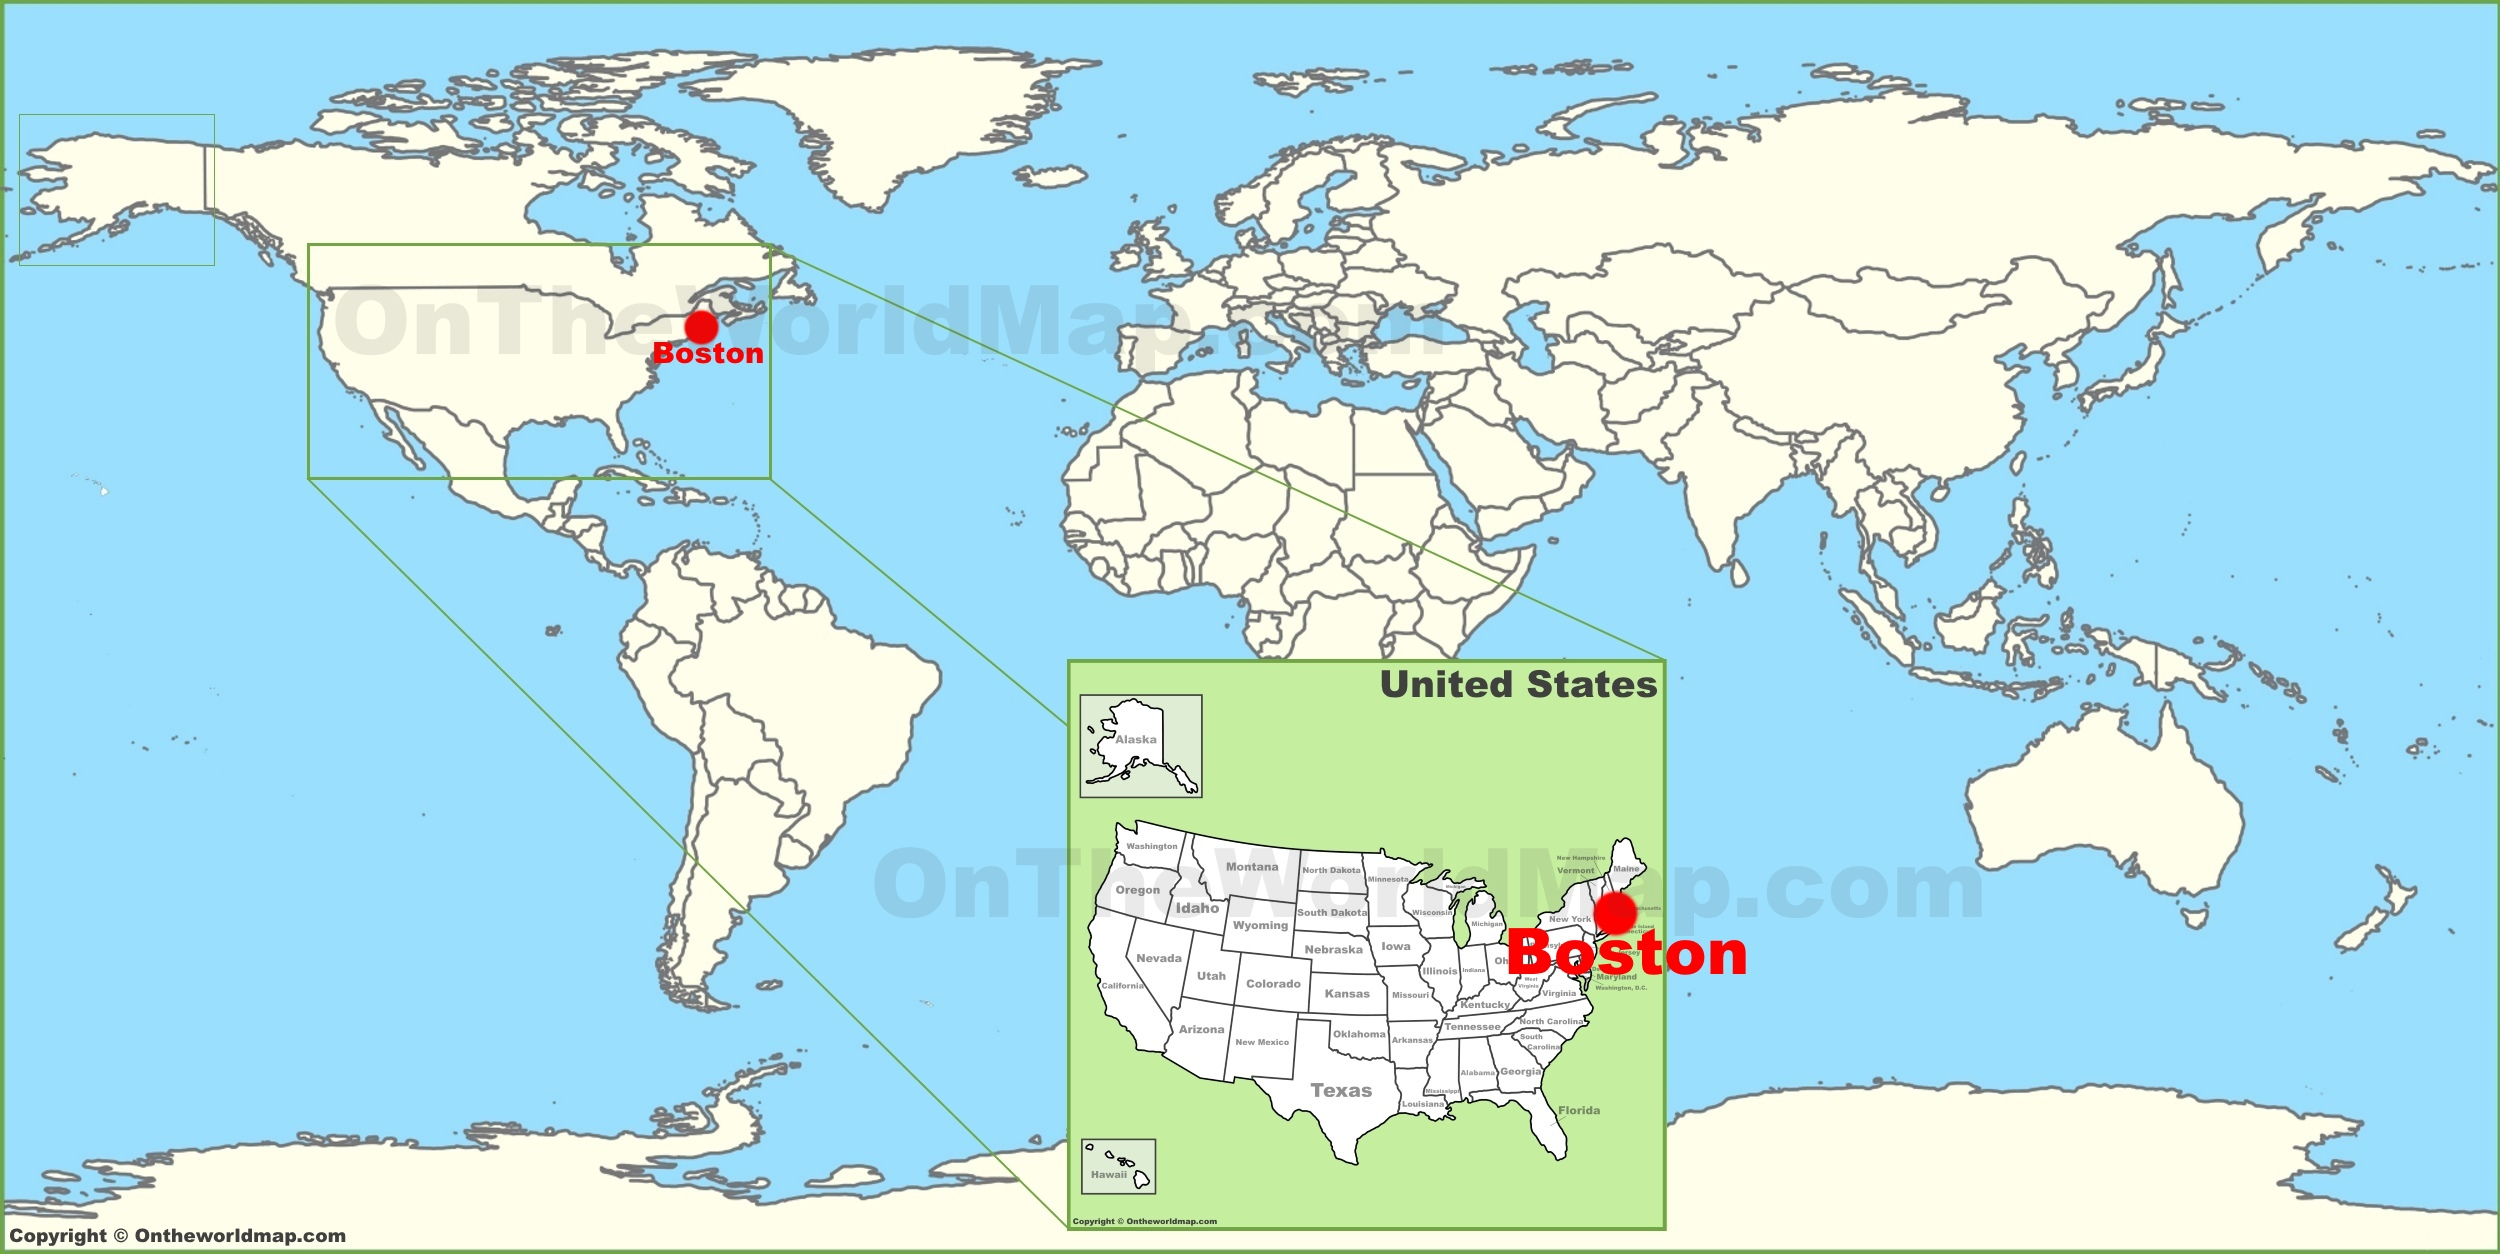 Boston on the world map boston on the world map gumiabroncs Gallery